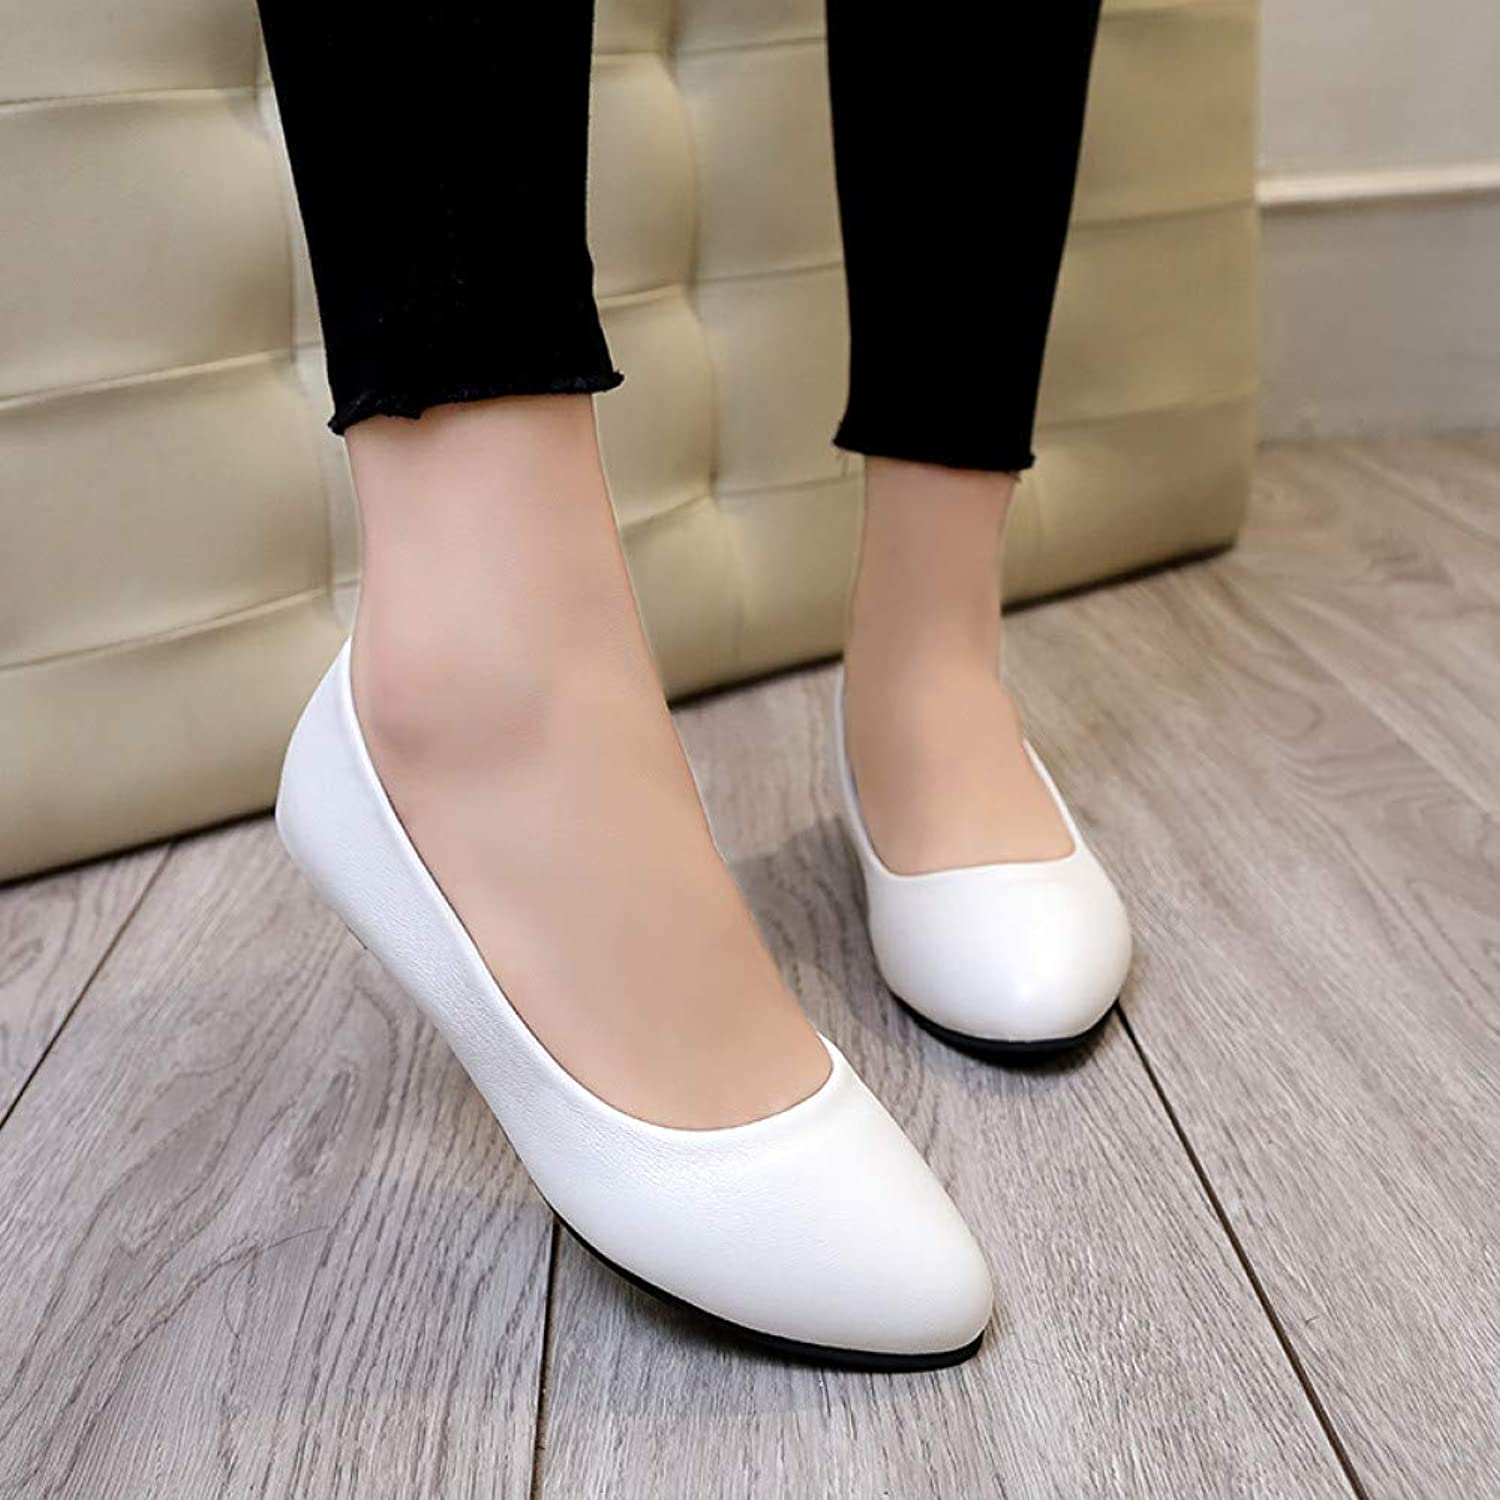 UKJSNHH igh Heels Spring Autumn Womens Wedding shoes Low Heels shoes for Woman Boat shoes Leather Black Slip on shoes